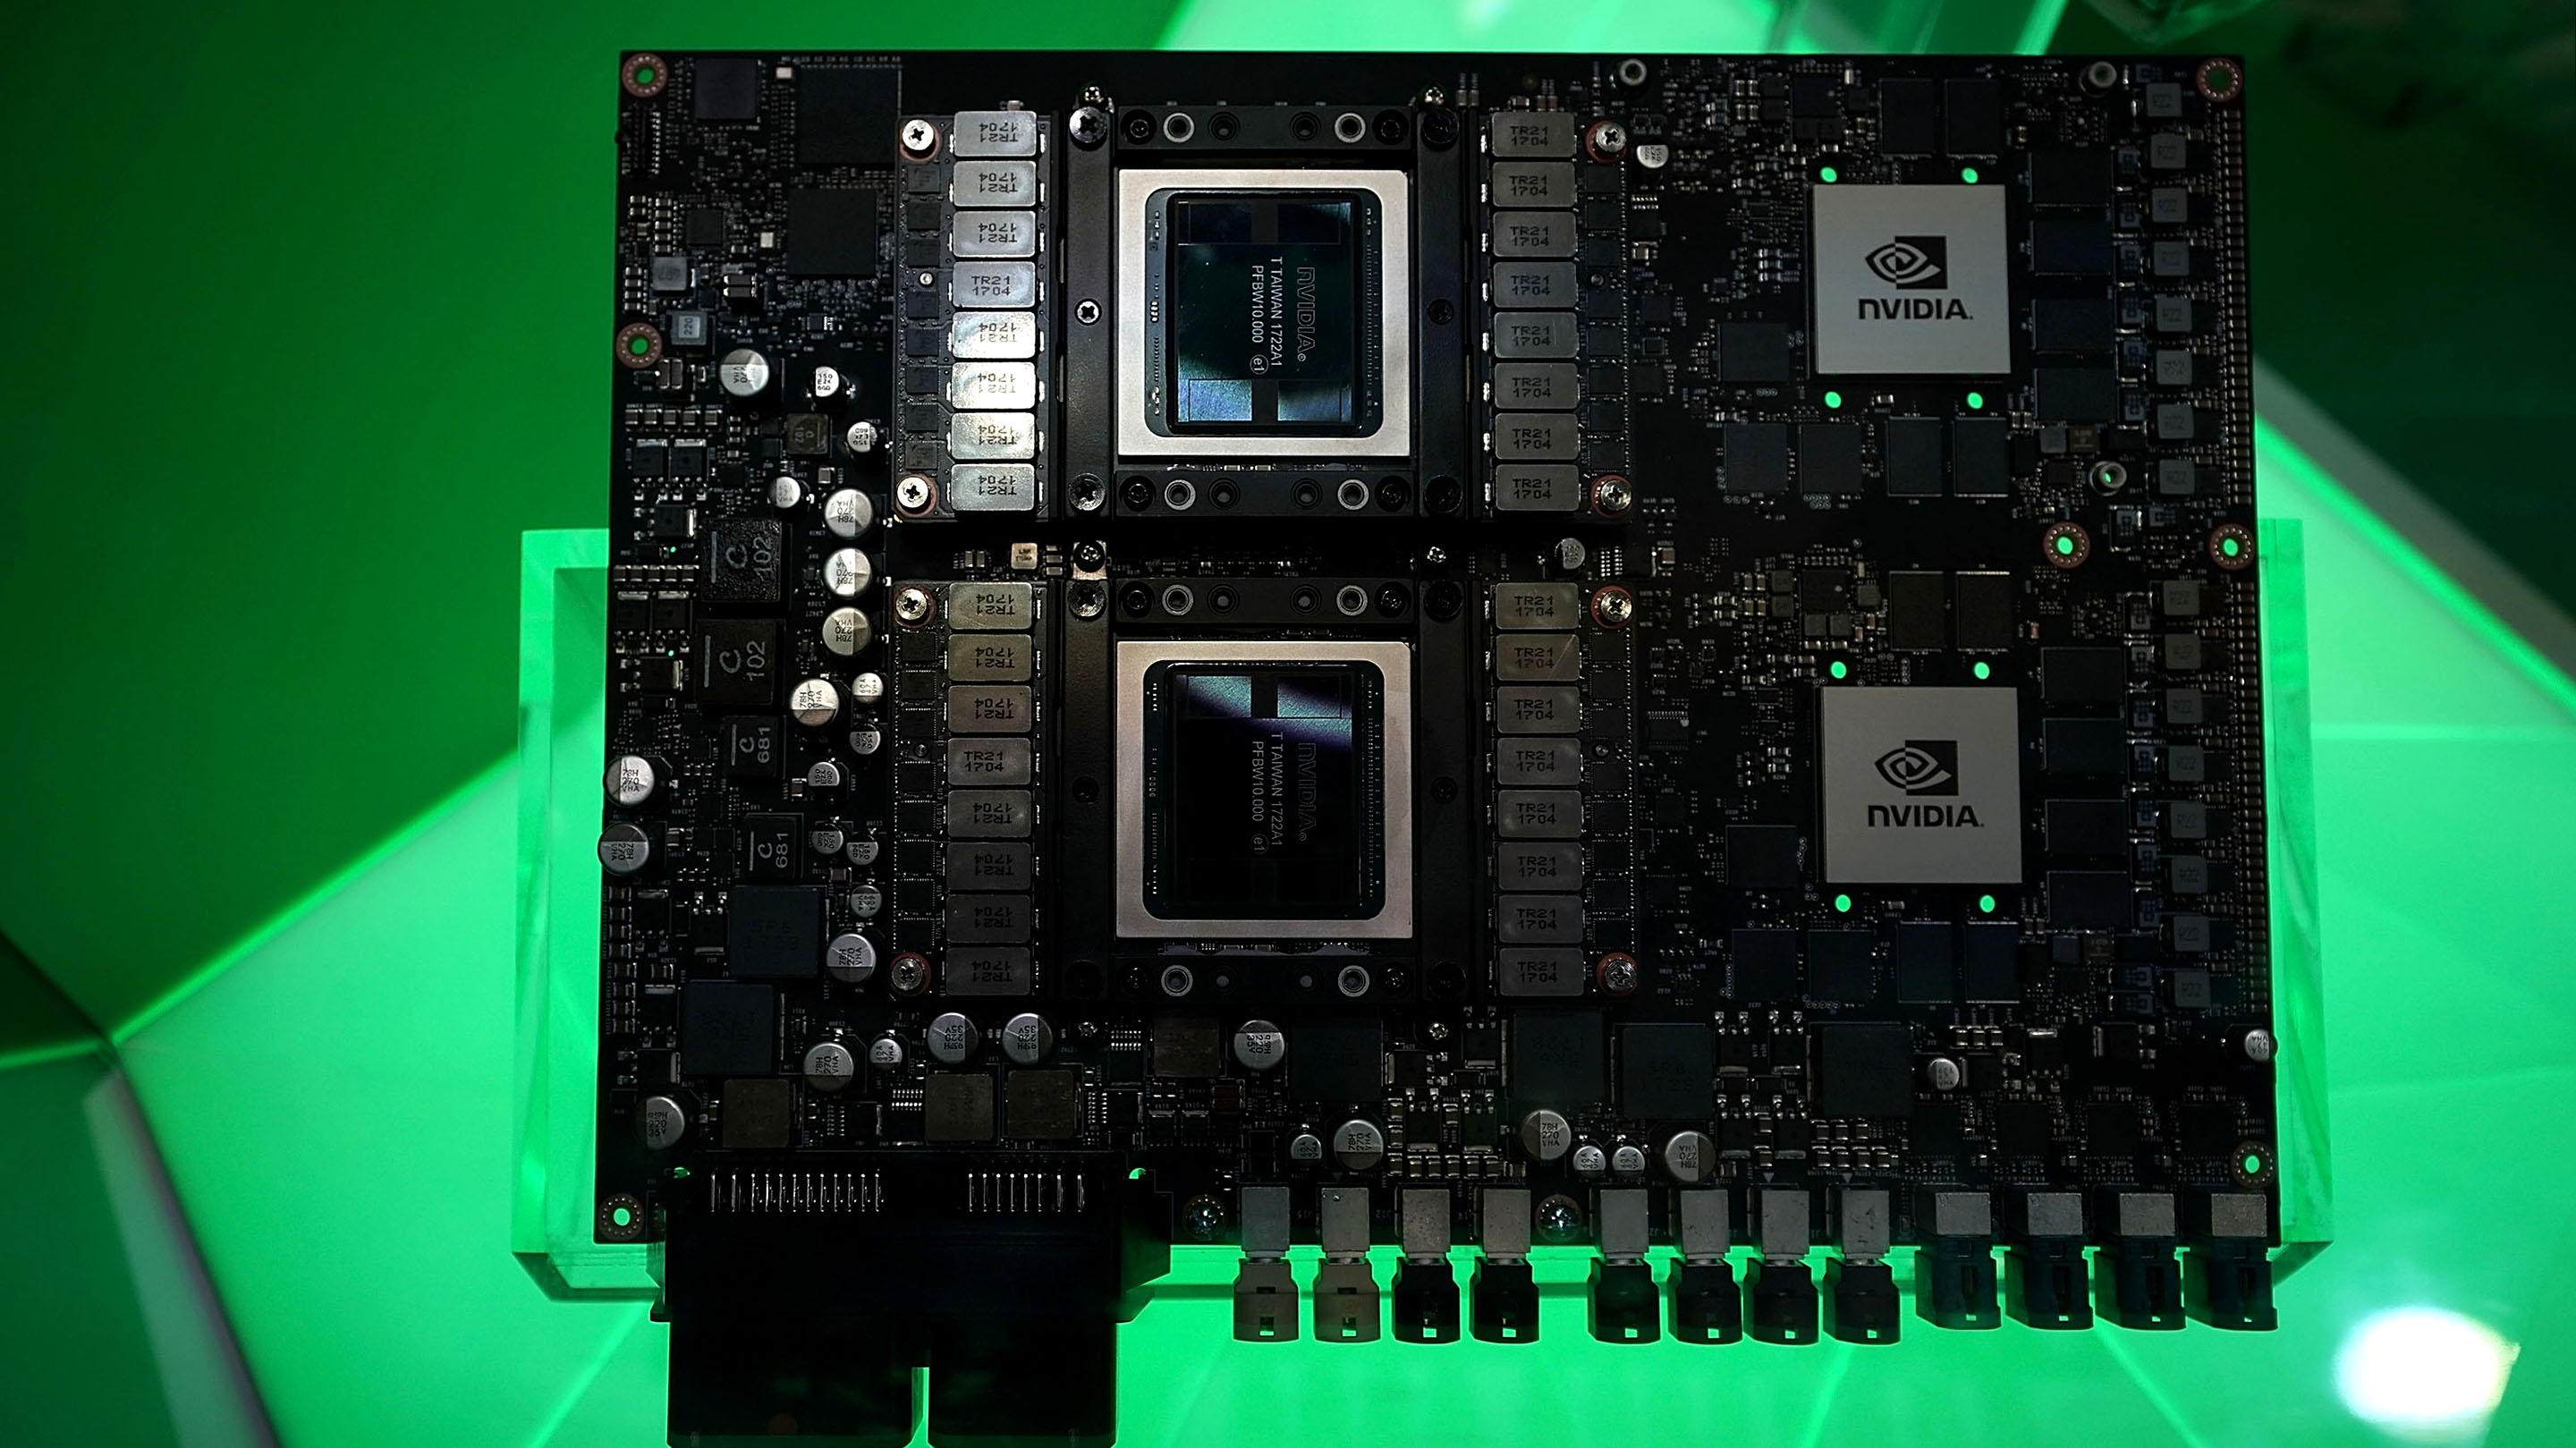 NVIDIA-best-workplaces-tech-2018